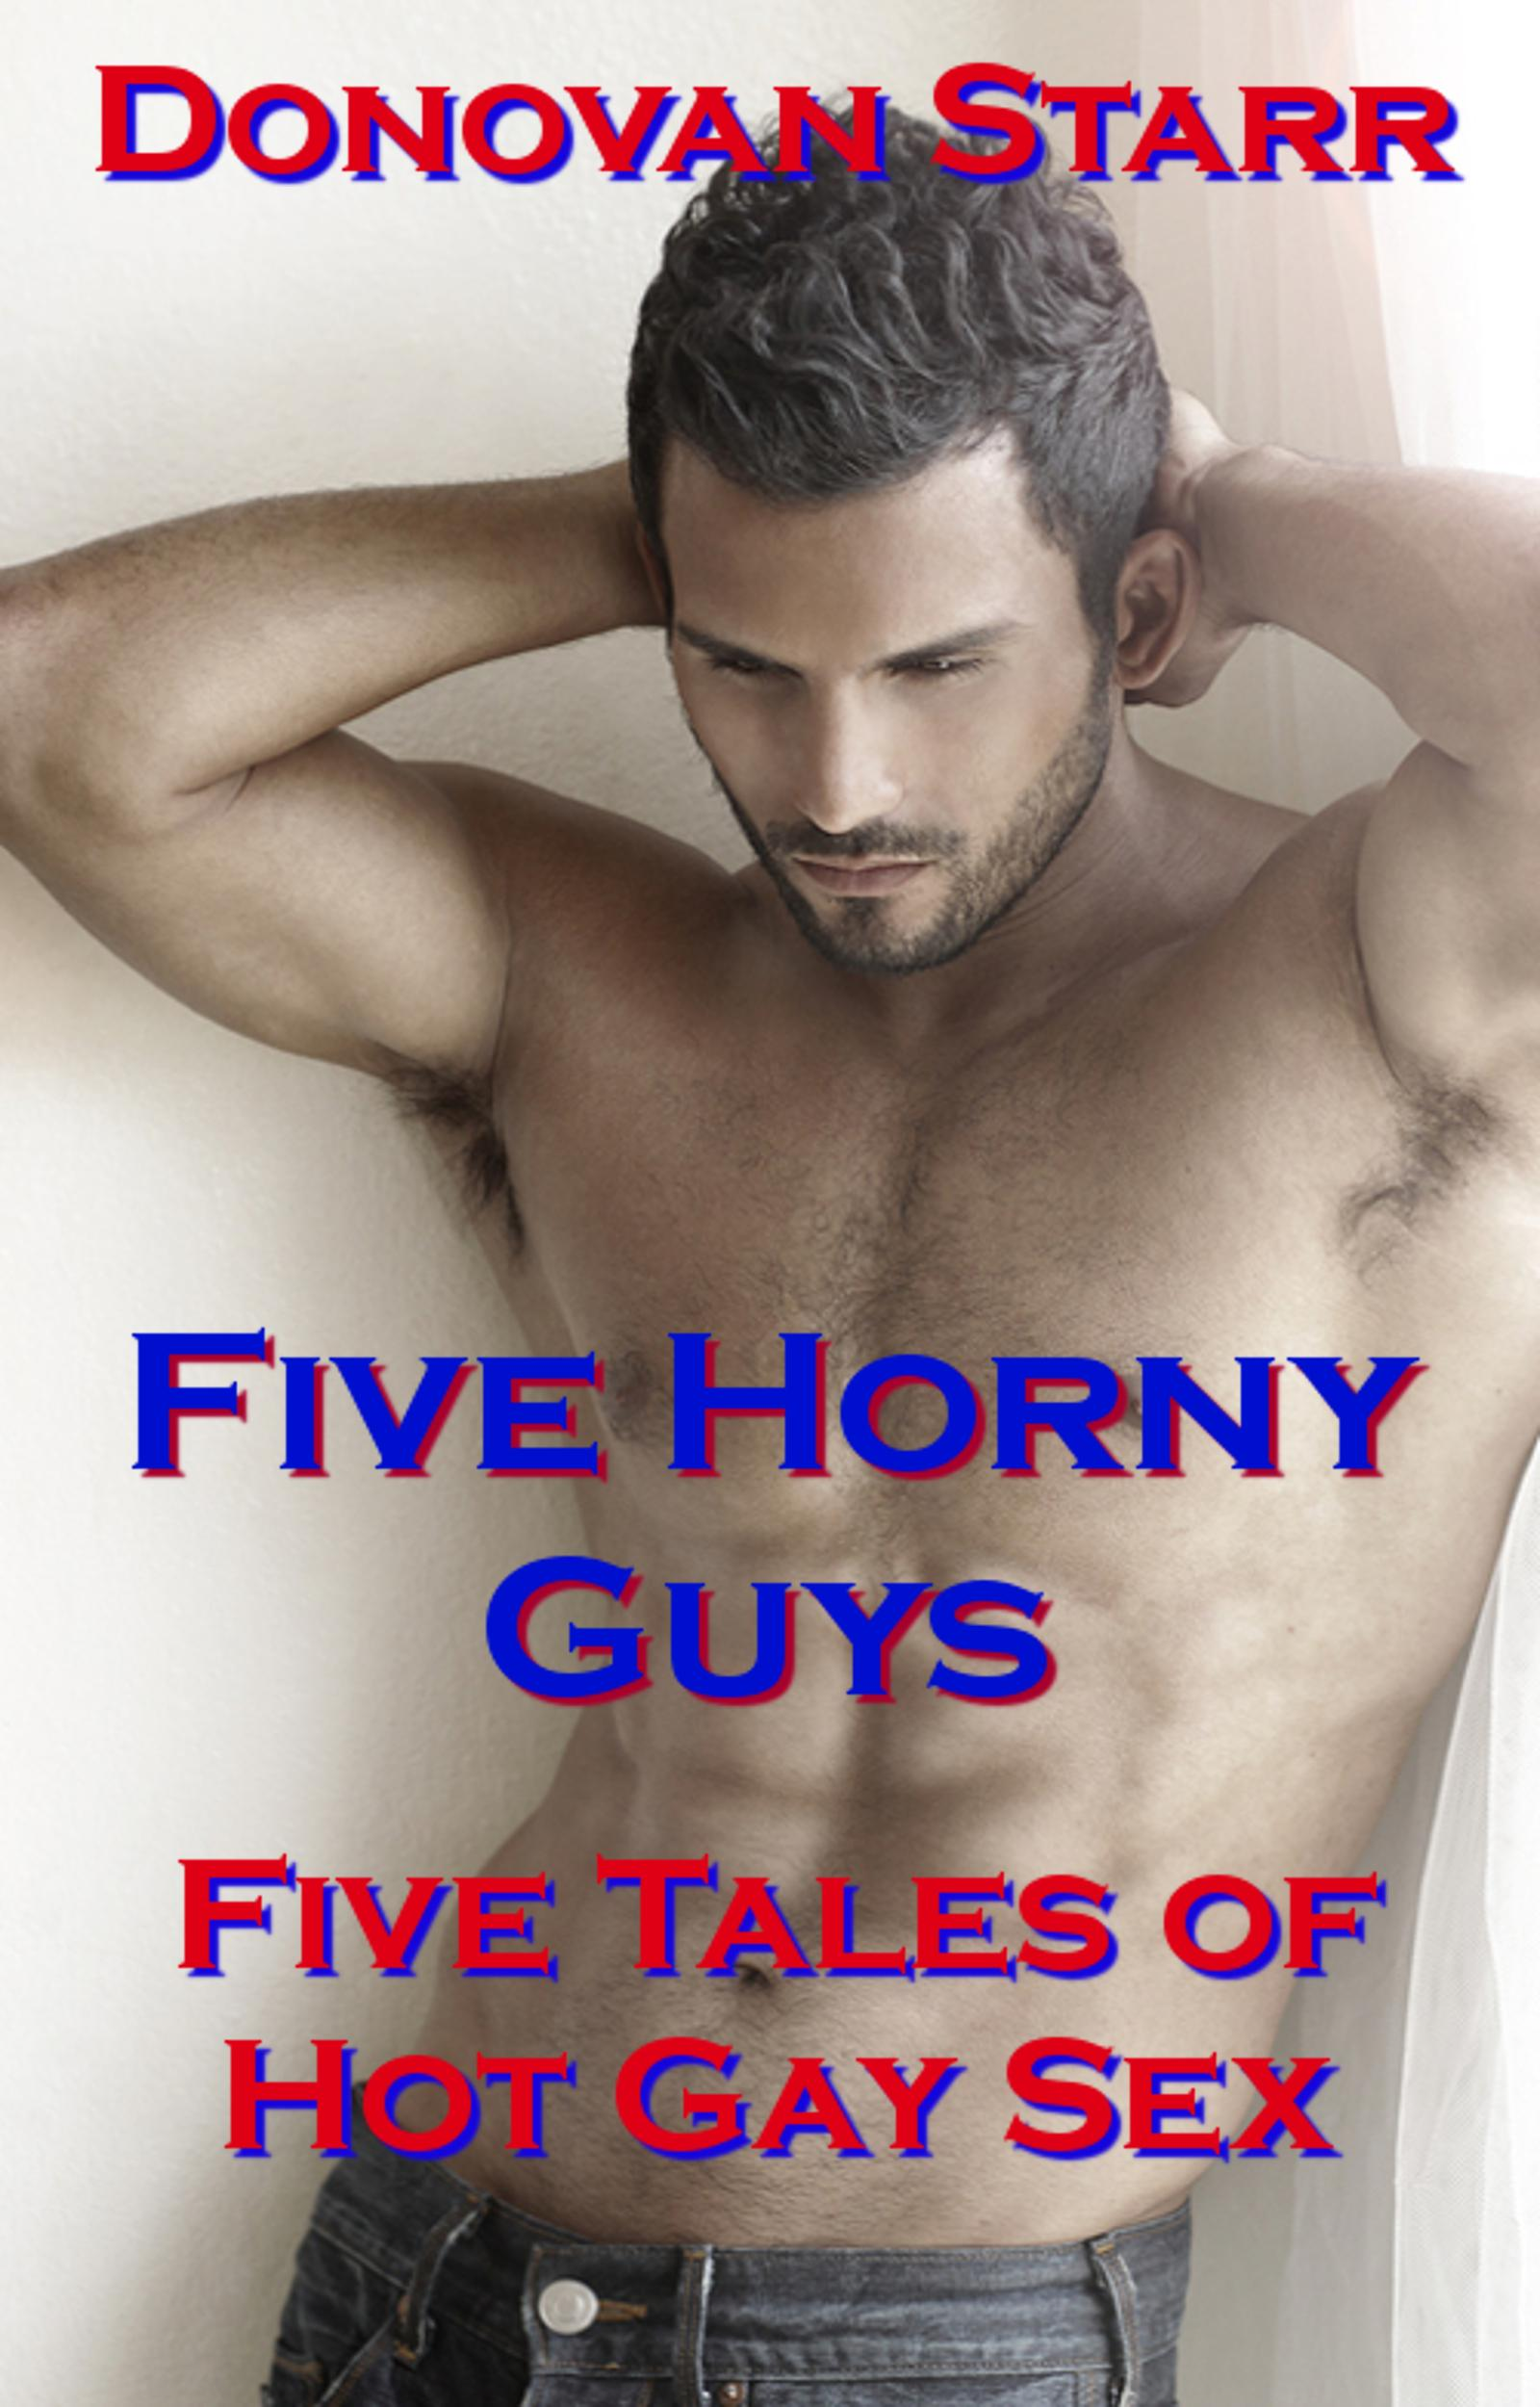 Discrete gay erotic stories for work